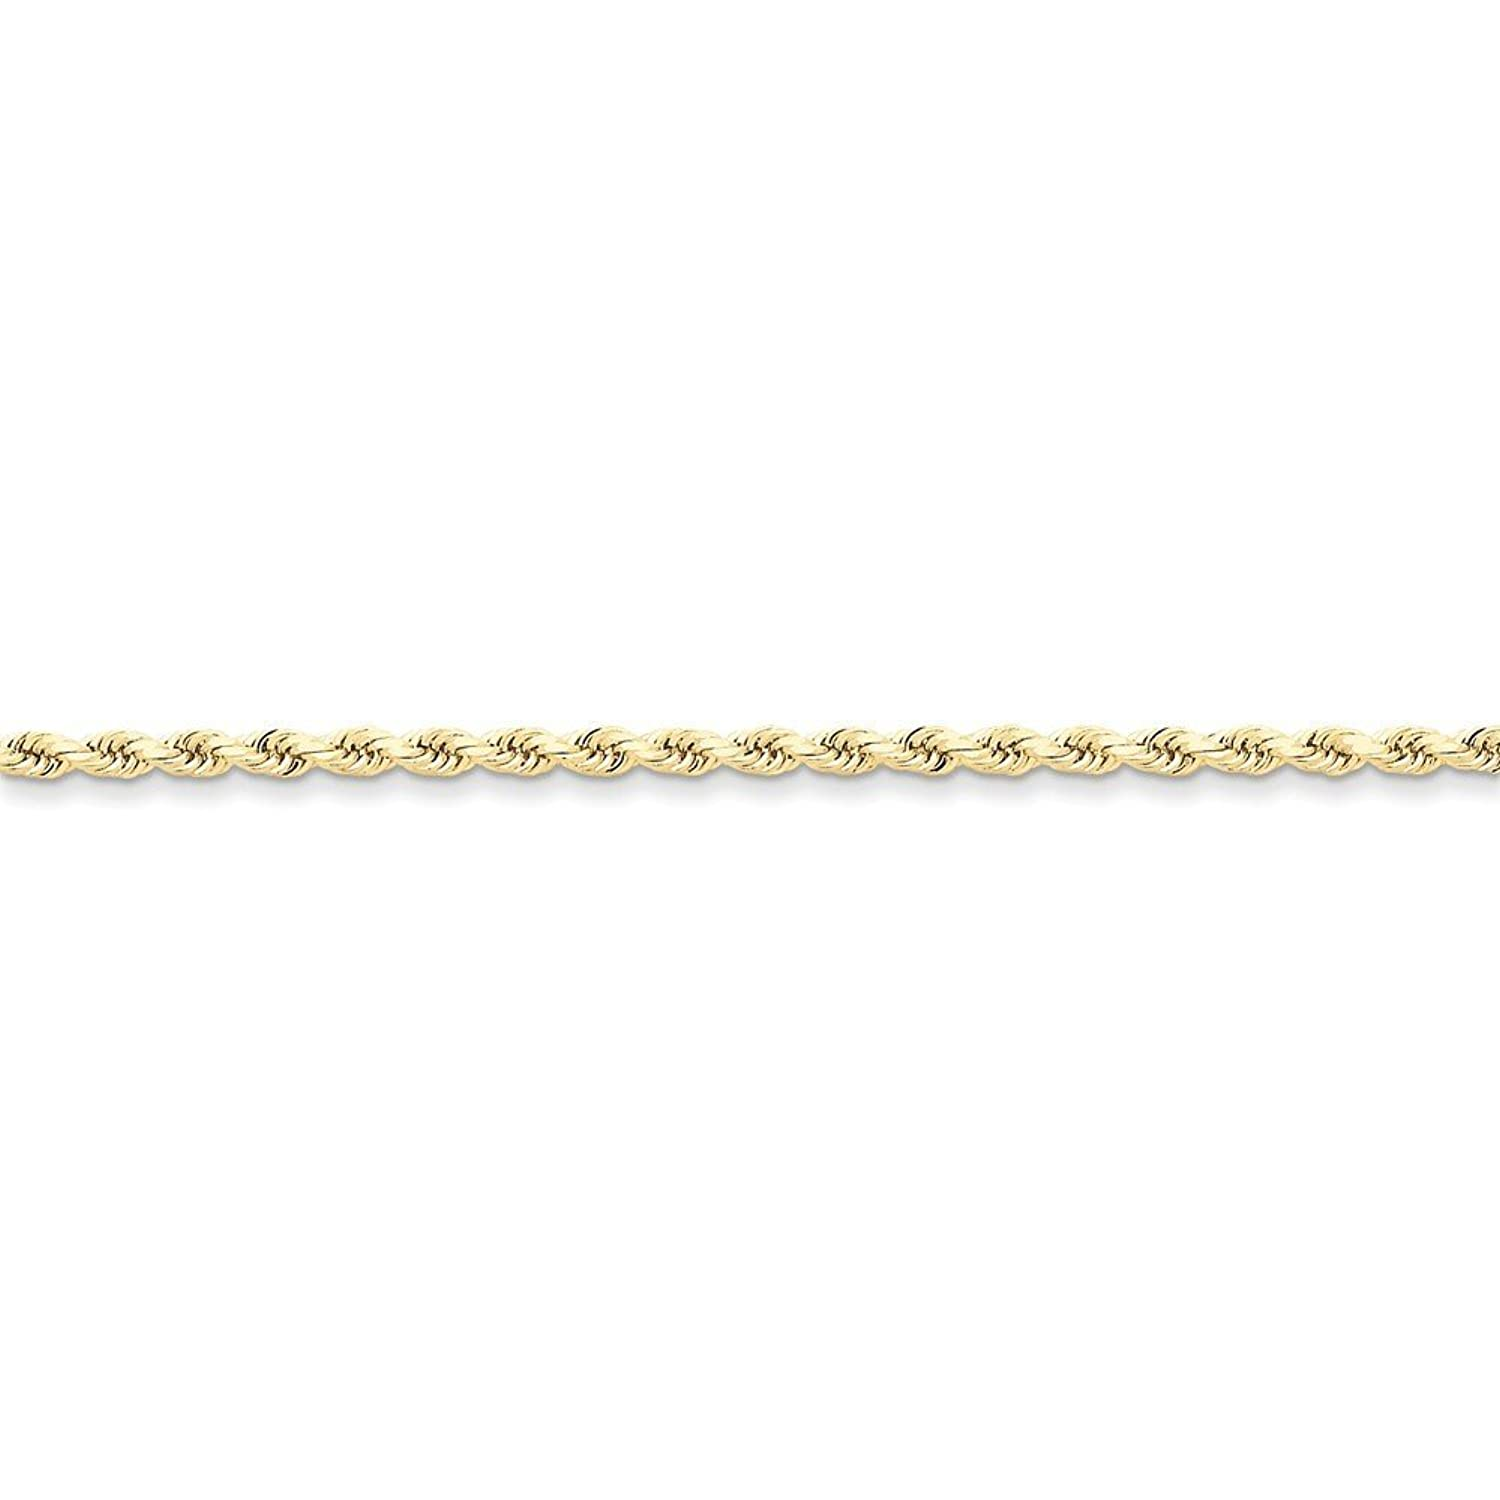 10K Yellow Gold 2.75mm Faceted-Cut Rope Chain Anklet, 9""